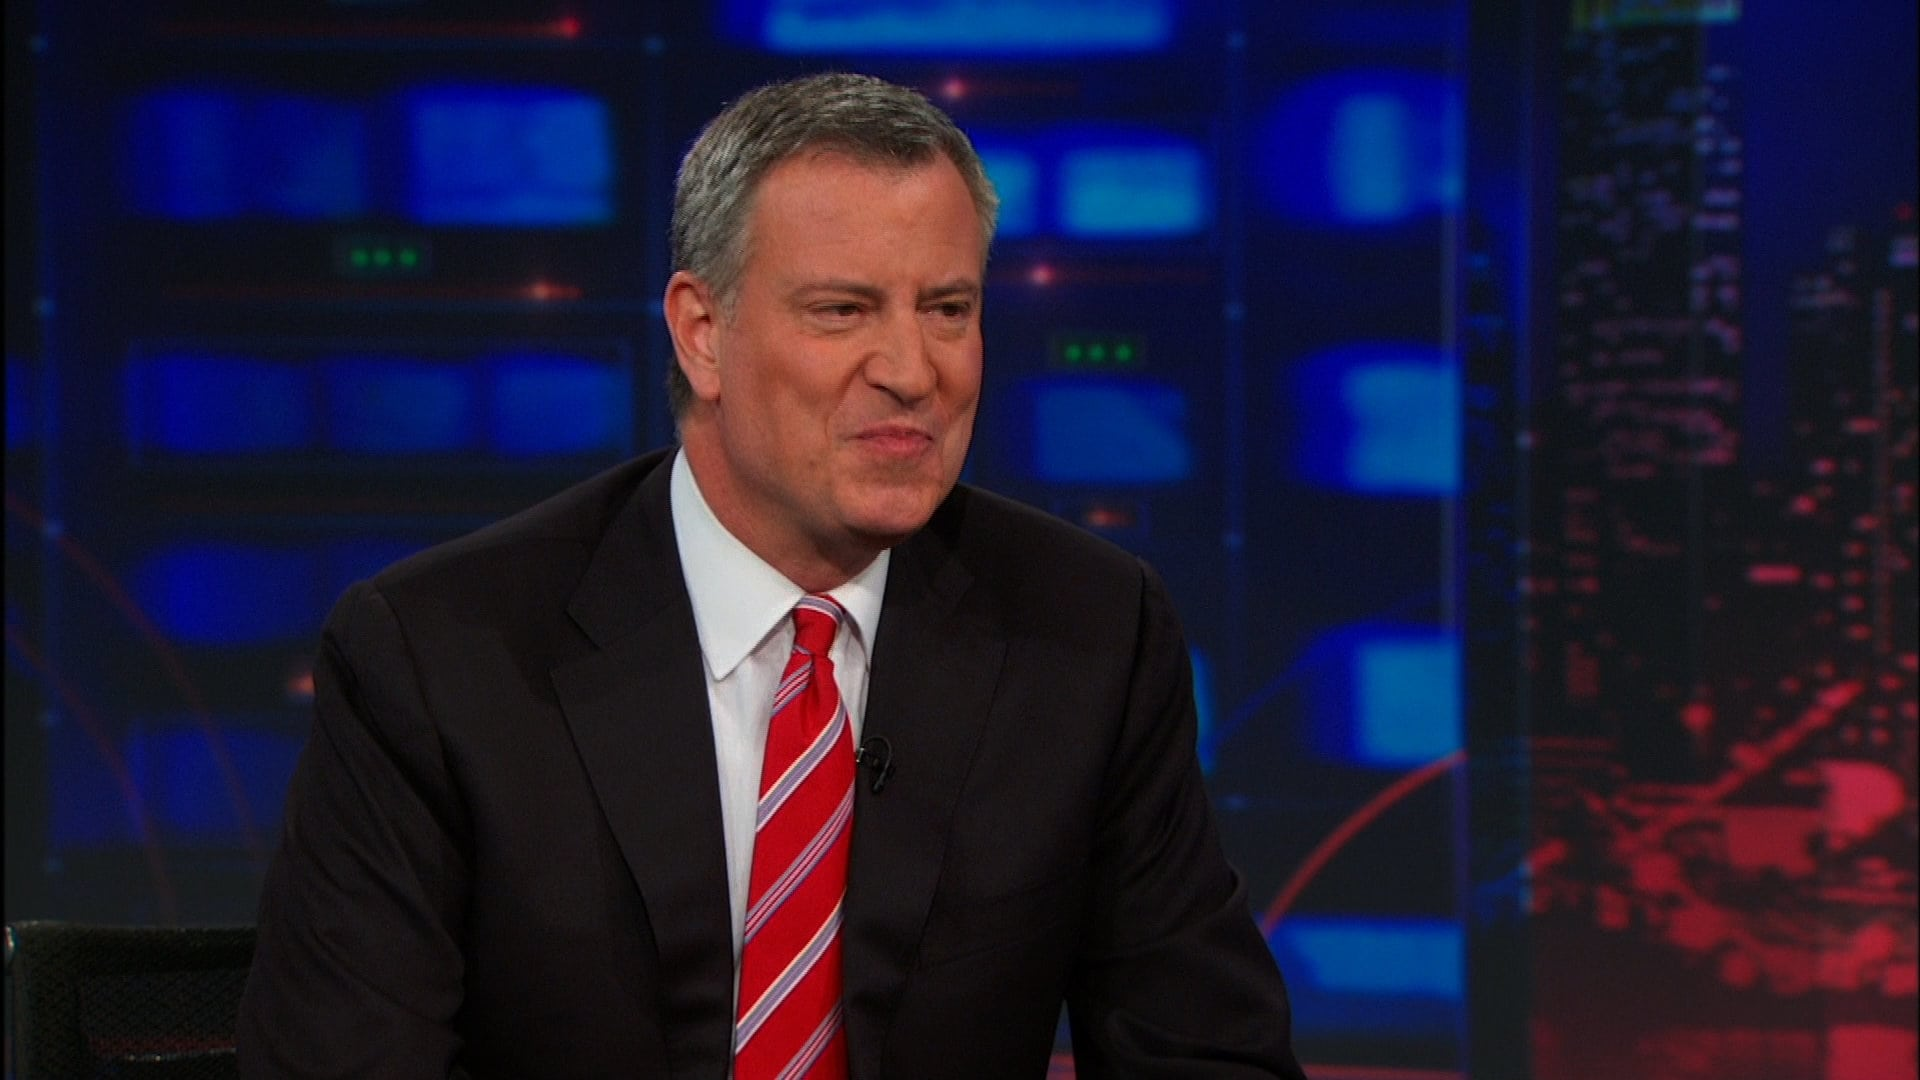 The Daily Show with Trevor Noah Season 19 :Episode 57  Bill de Blasio